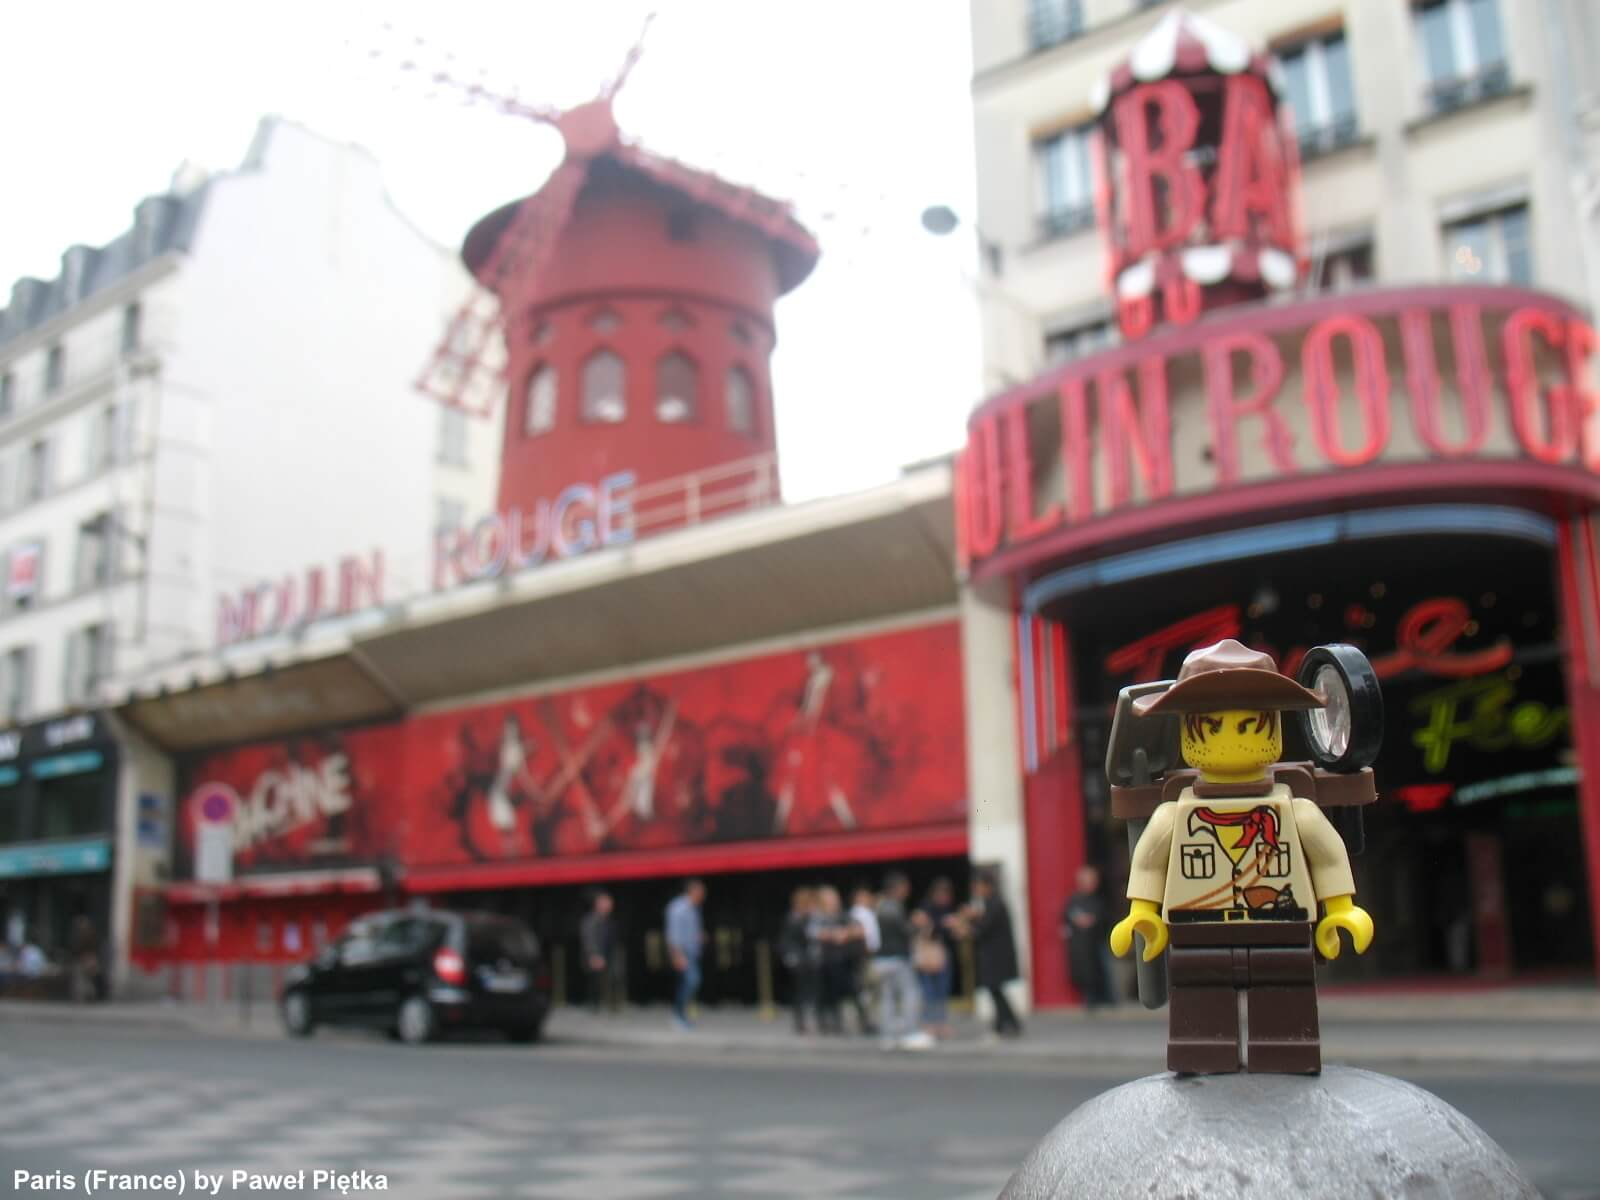 Paris (France) - Moulin Rouge